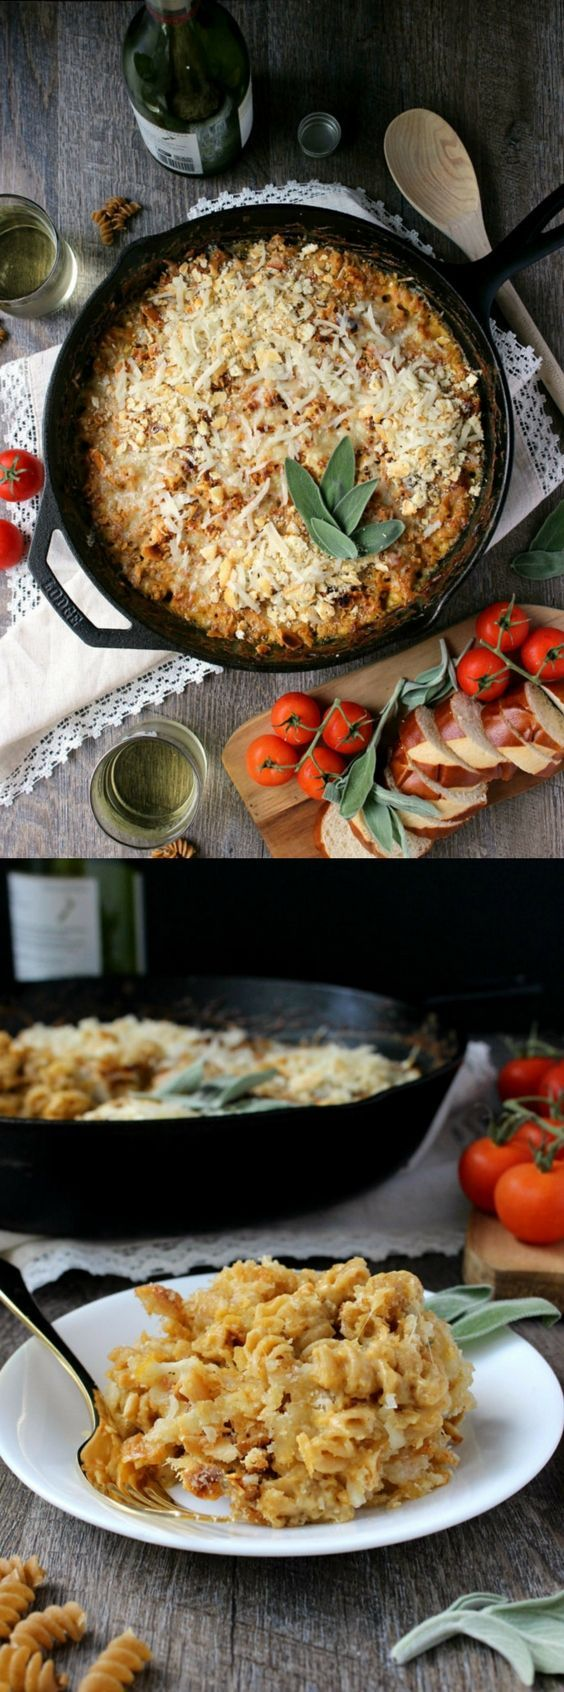 Cheesy and savory with a hint of kick and spice, this One-Skillet Butternut Alfredo Baked Fusilli is as easy to make as it is comforting and delicious.